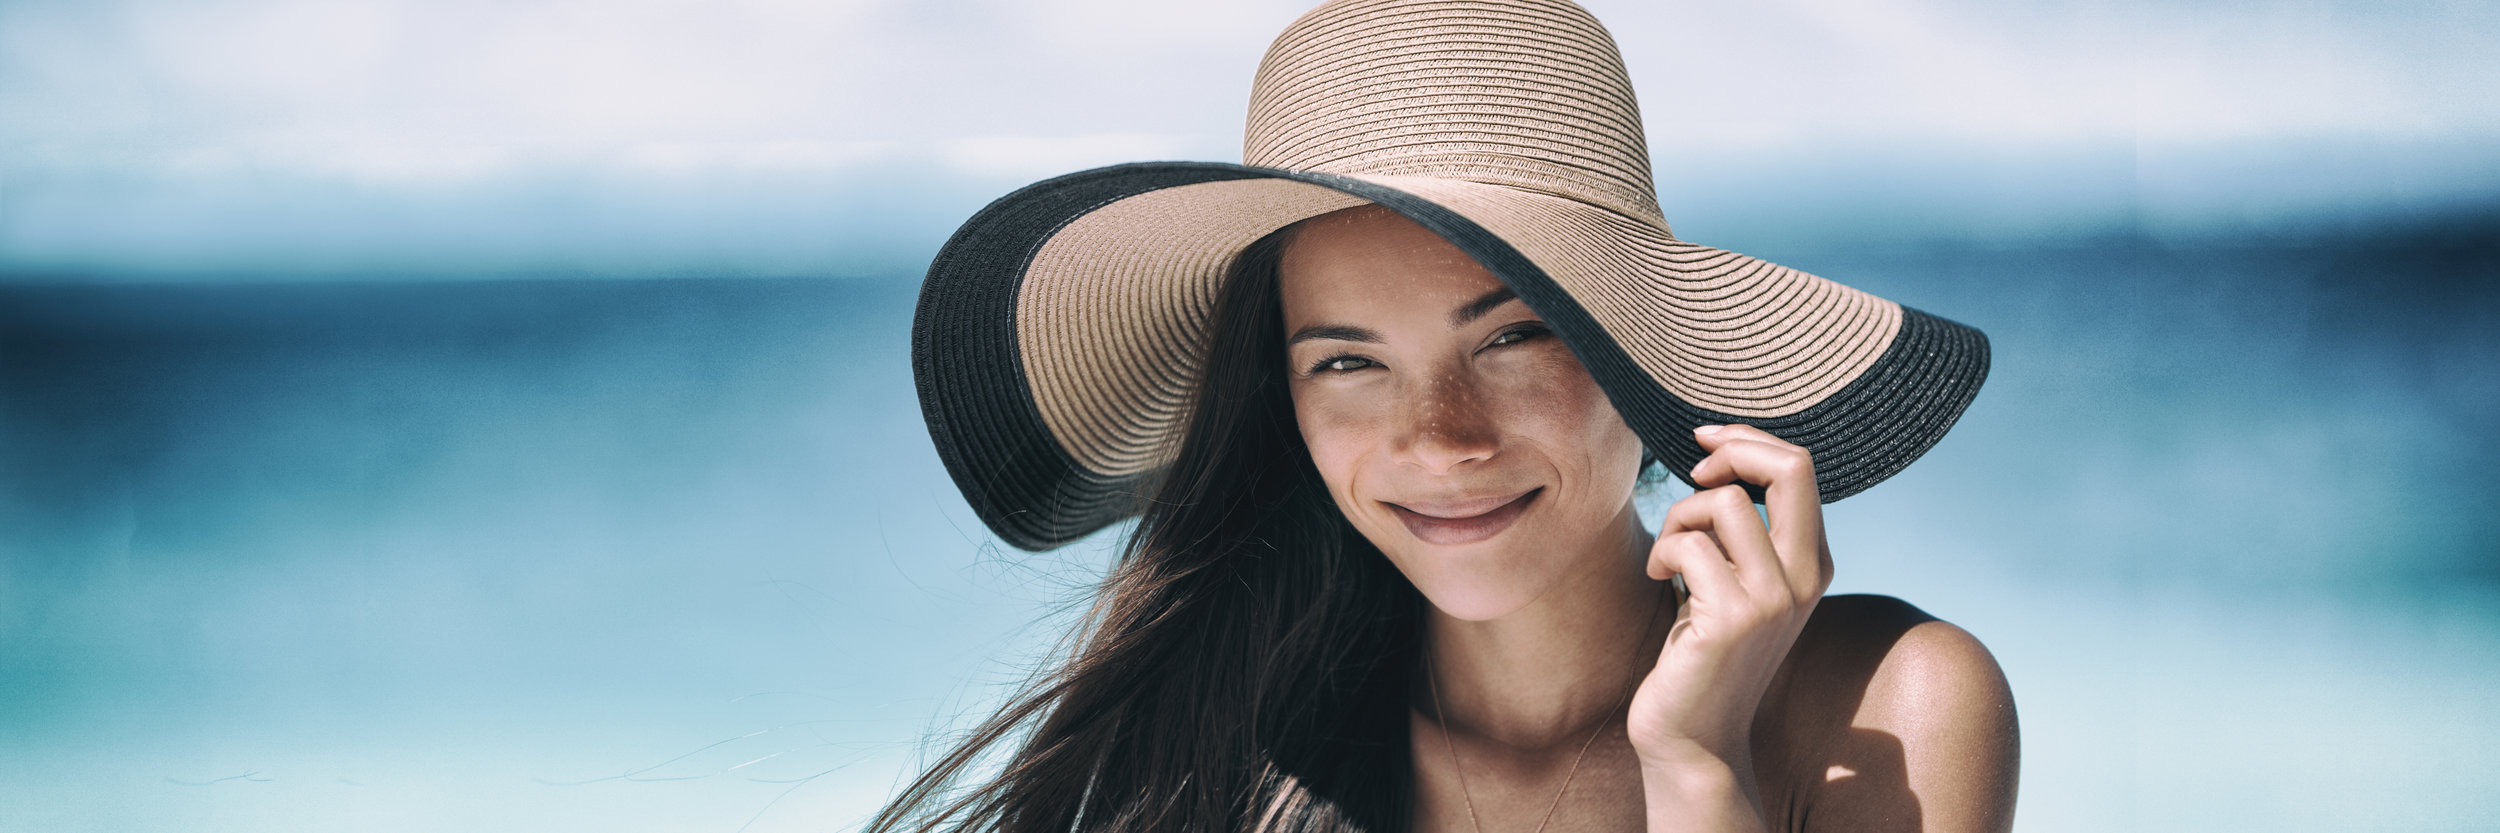 Woman with long dark brown hair flowing in the breeze and skin that is free of sun damage smiling and wearing sun hat with blue ocean background.